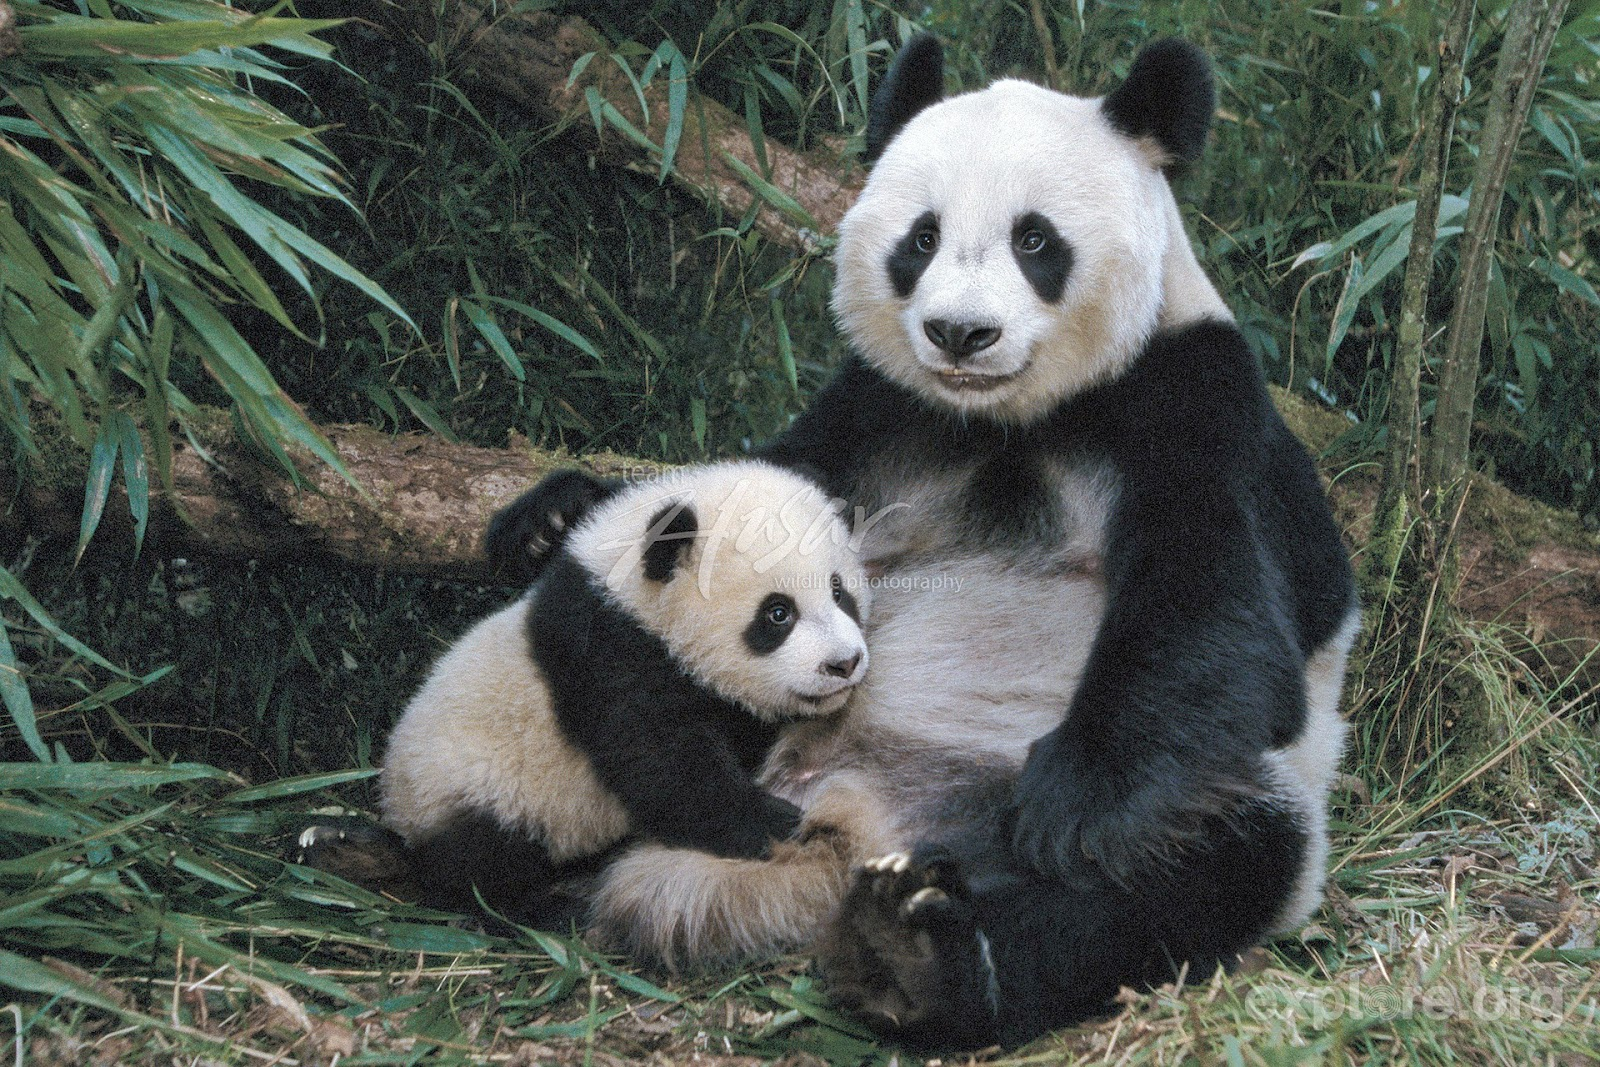 giant panda Habitat of giant panda: the giant panda requires bamboo, and bamboo requires a cool, moist climate, therefore the panda, by extension, requires a cool, moist climate.